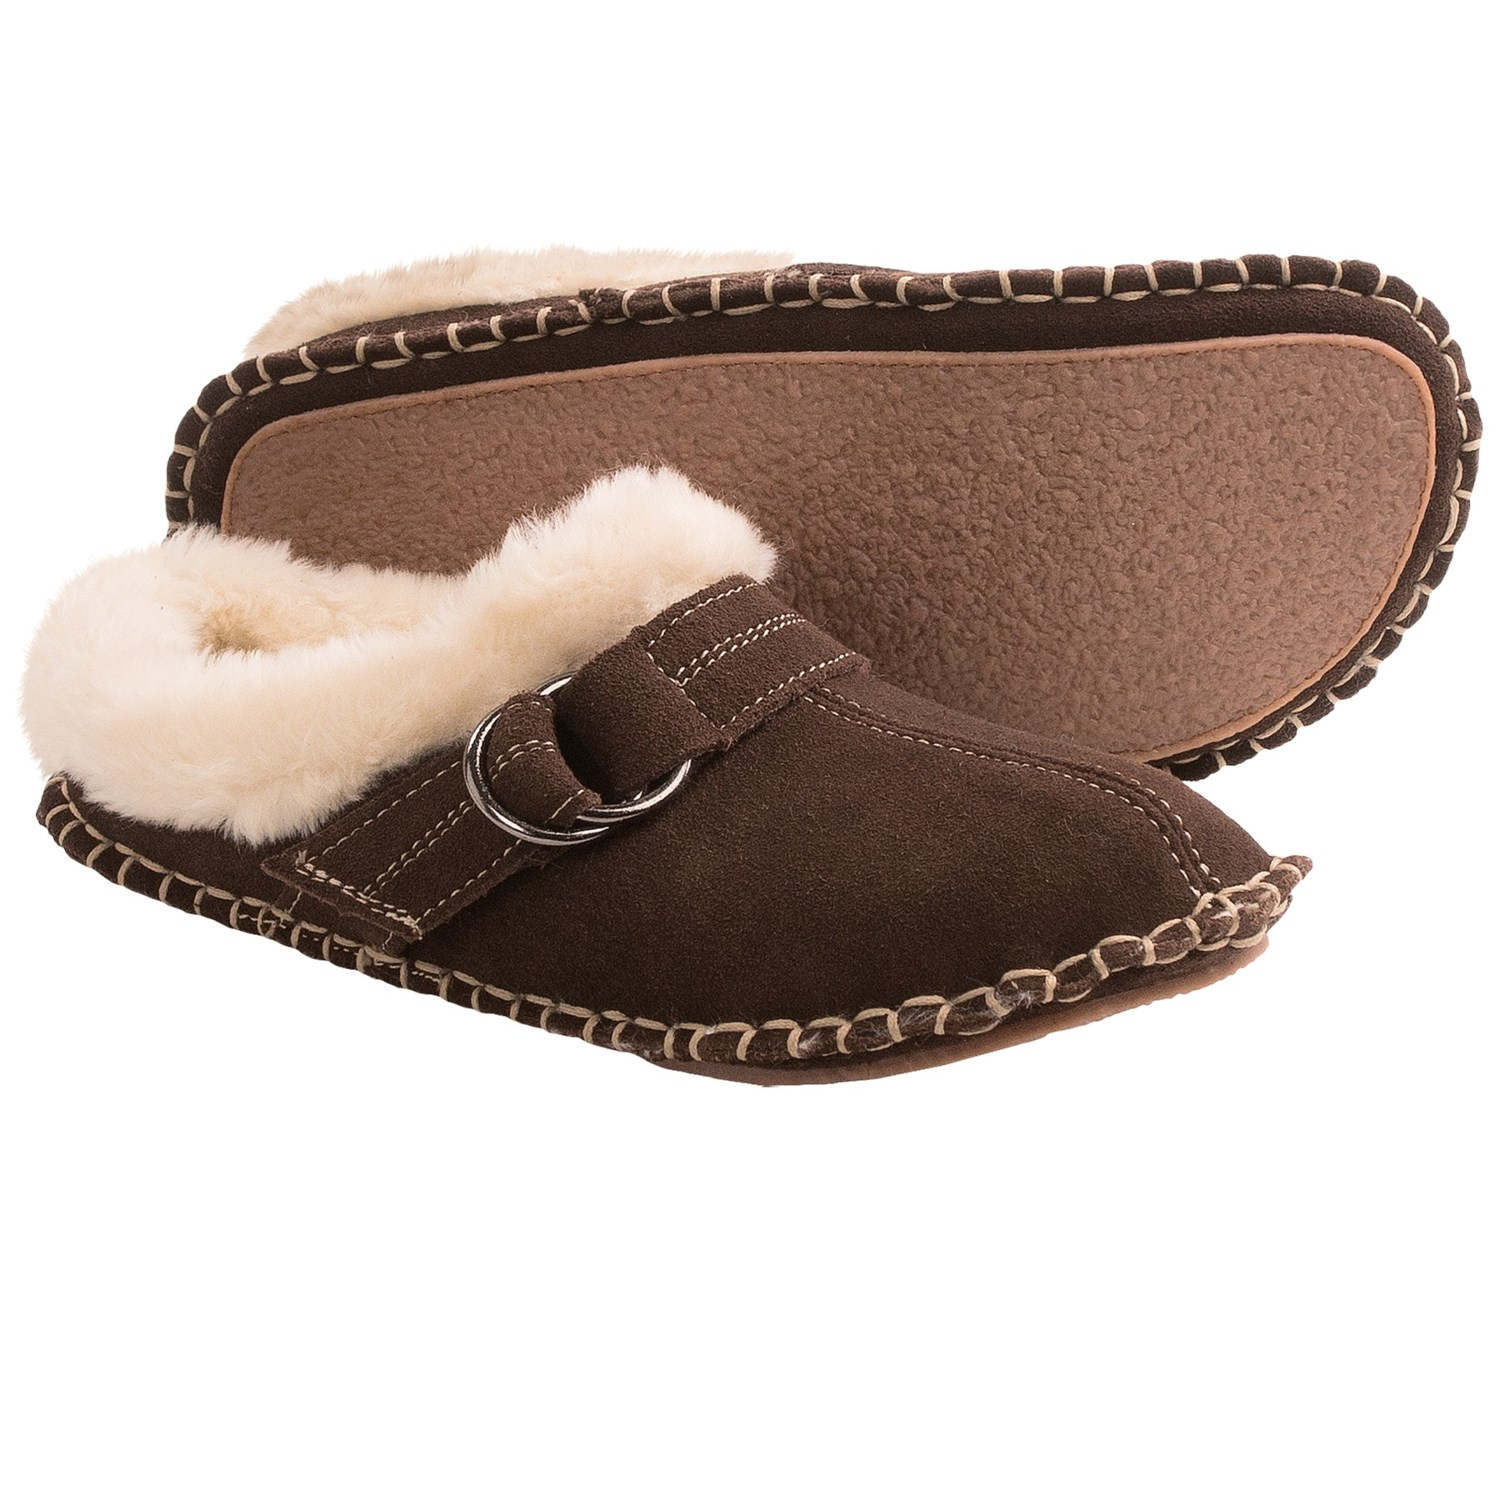 Jcpenney Womens Shoes Clarks